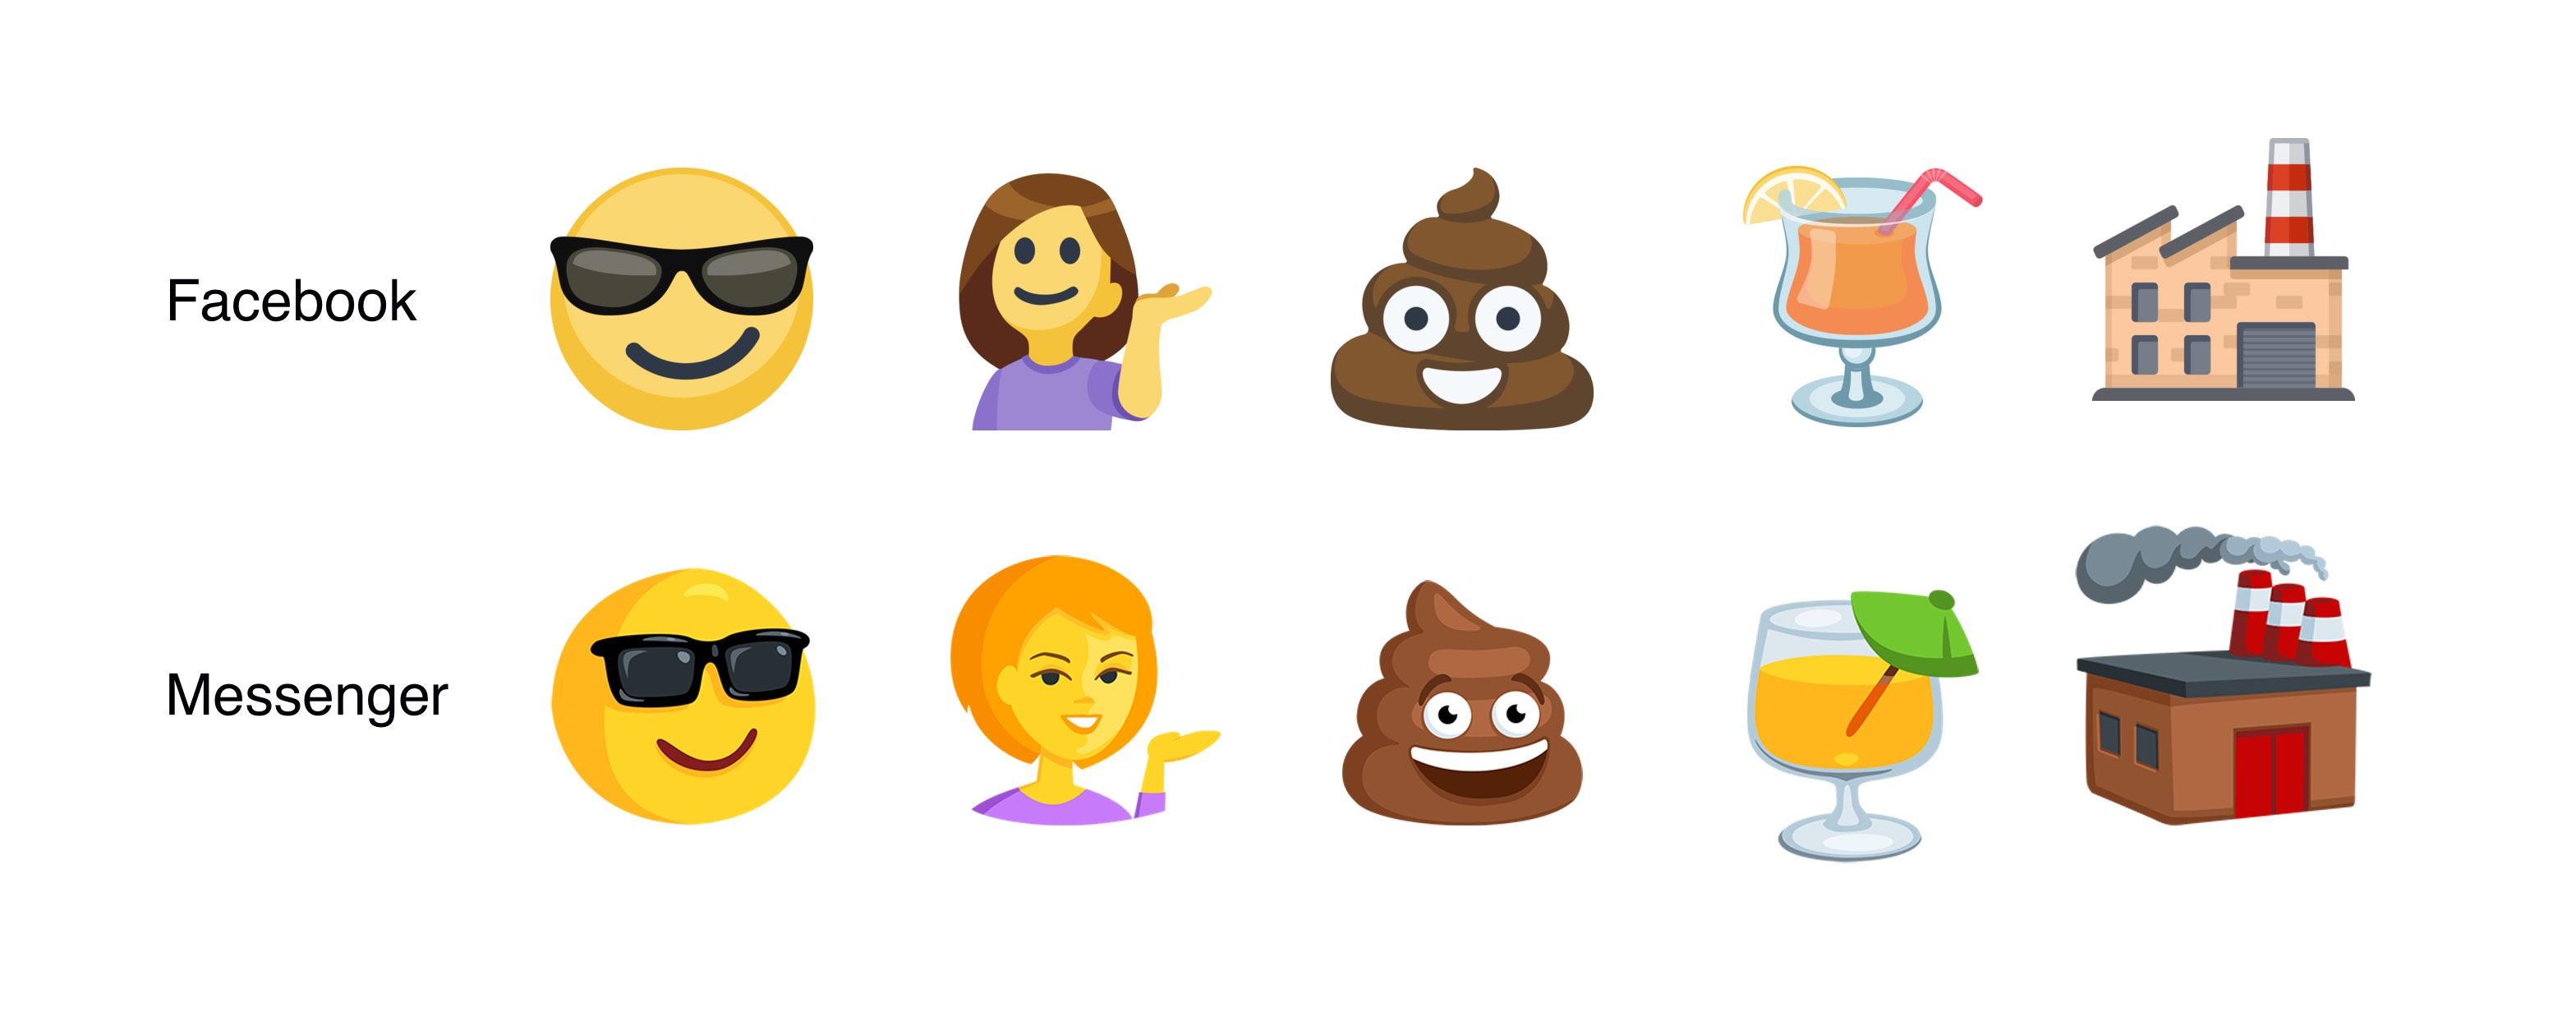 Facebook releases new emojis levitating woman above facebook and messenger have completely different artwork for their emojis biocorpaavc Images